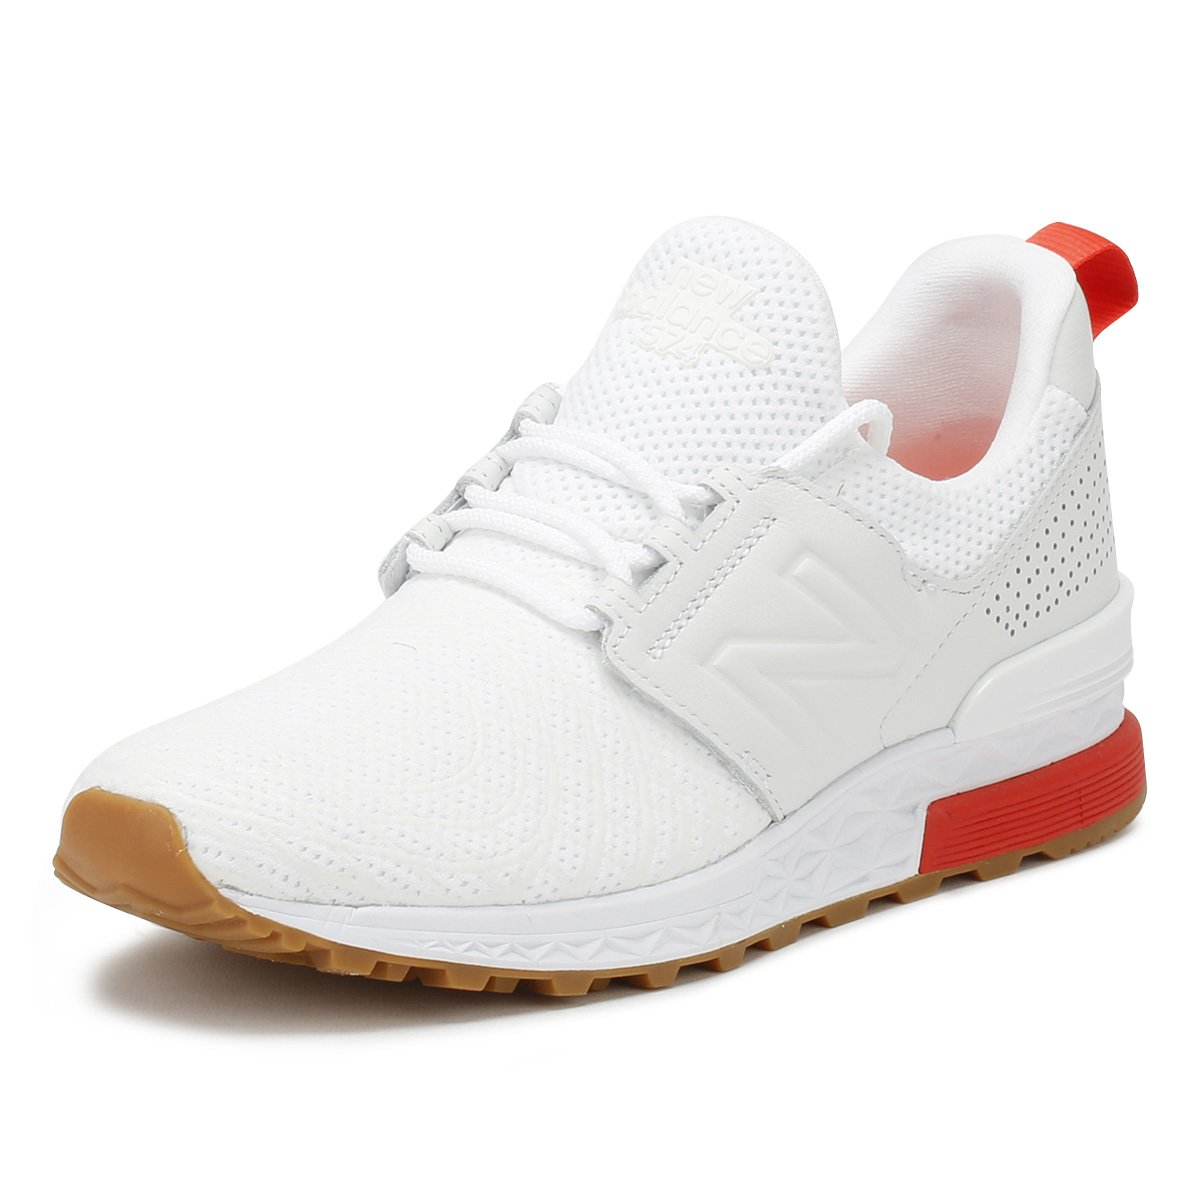 check out db6cb e54b6 Amazon.com | New Balance Mens White/Flame 574 Sport Sneakers ...